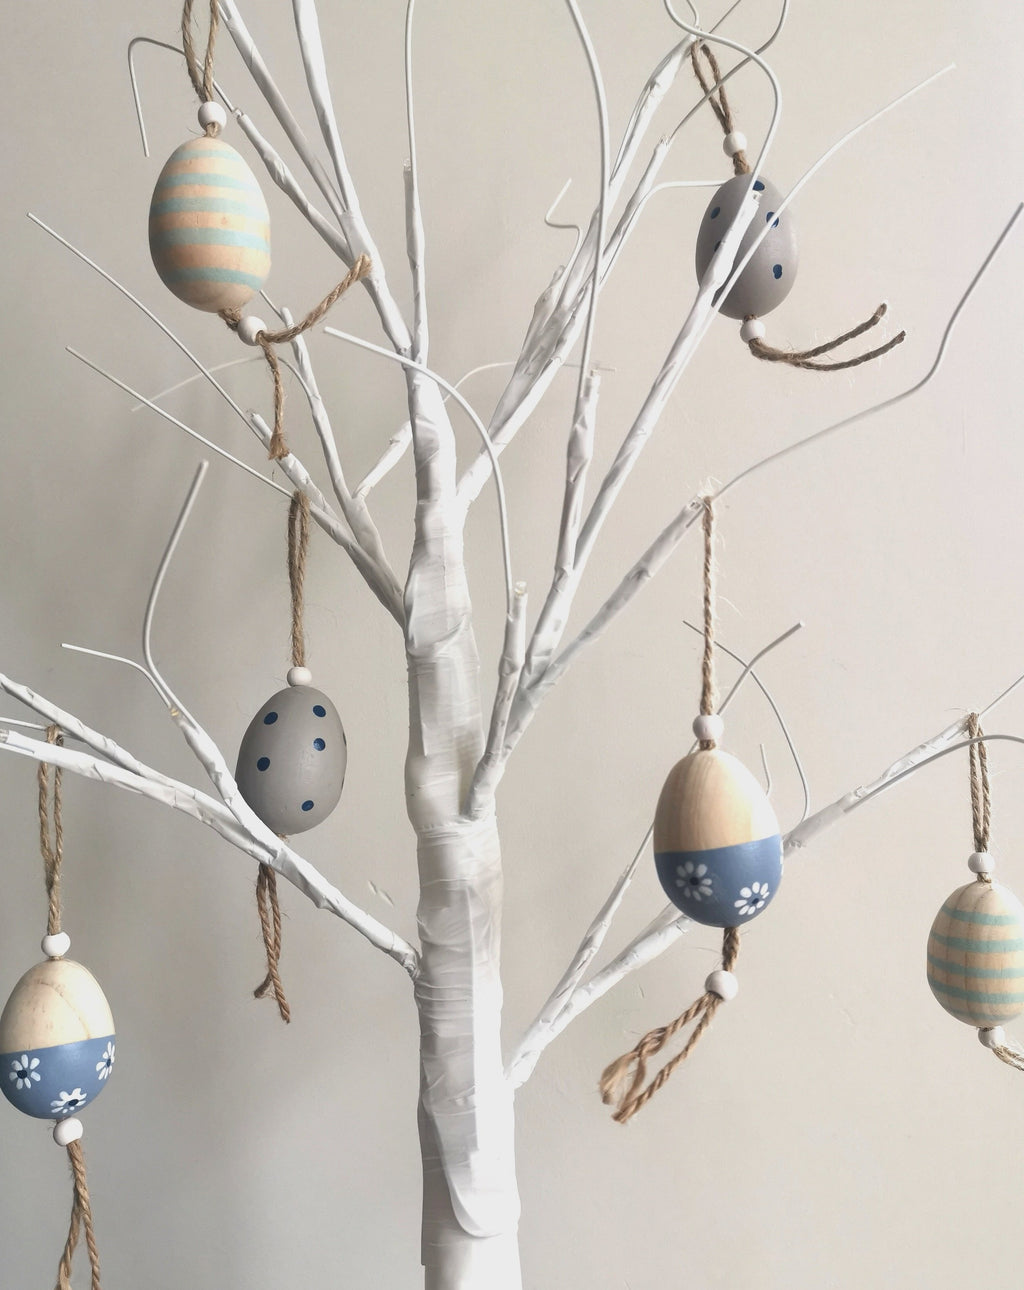 Wooden Decorative Hanging Eggs - The Burrow Interiors